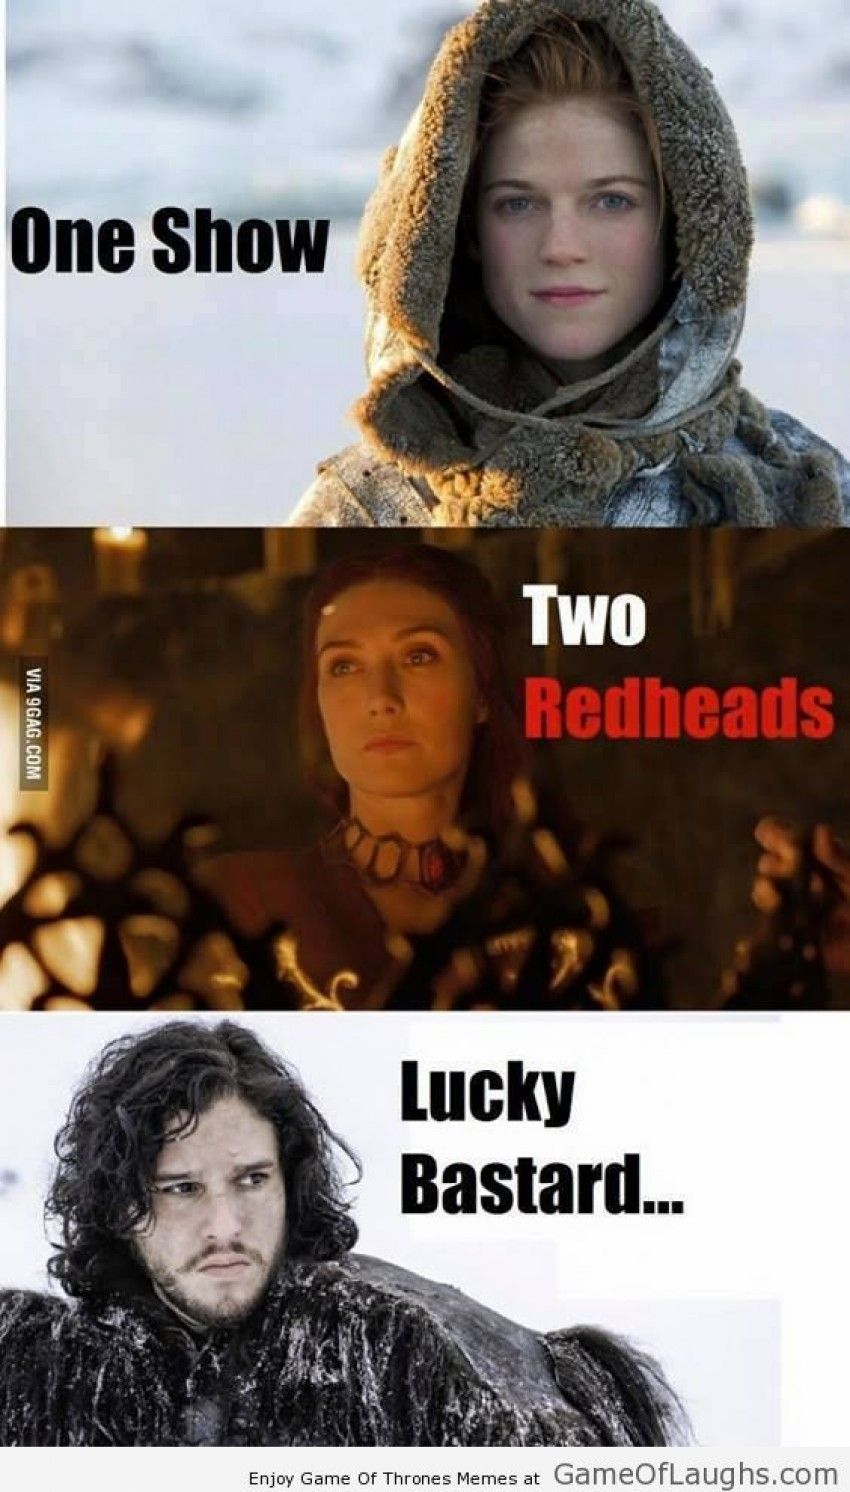 Jon Snow is really lucky   Game Of Laughs   Game of trones ...